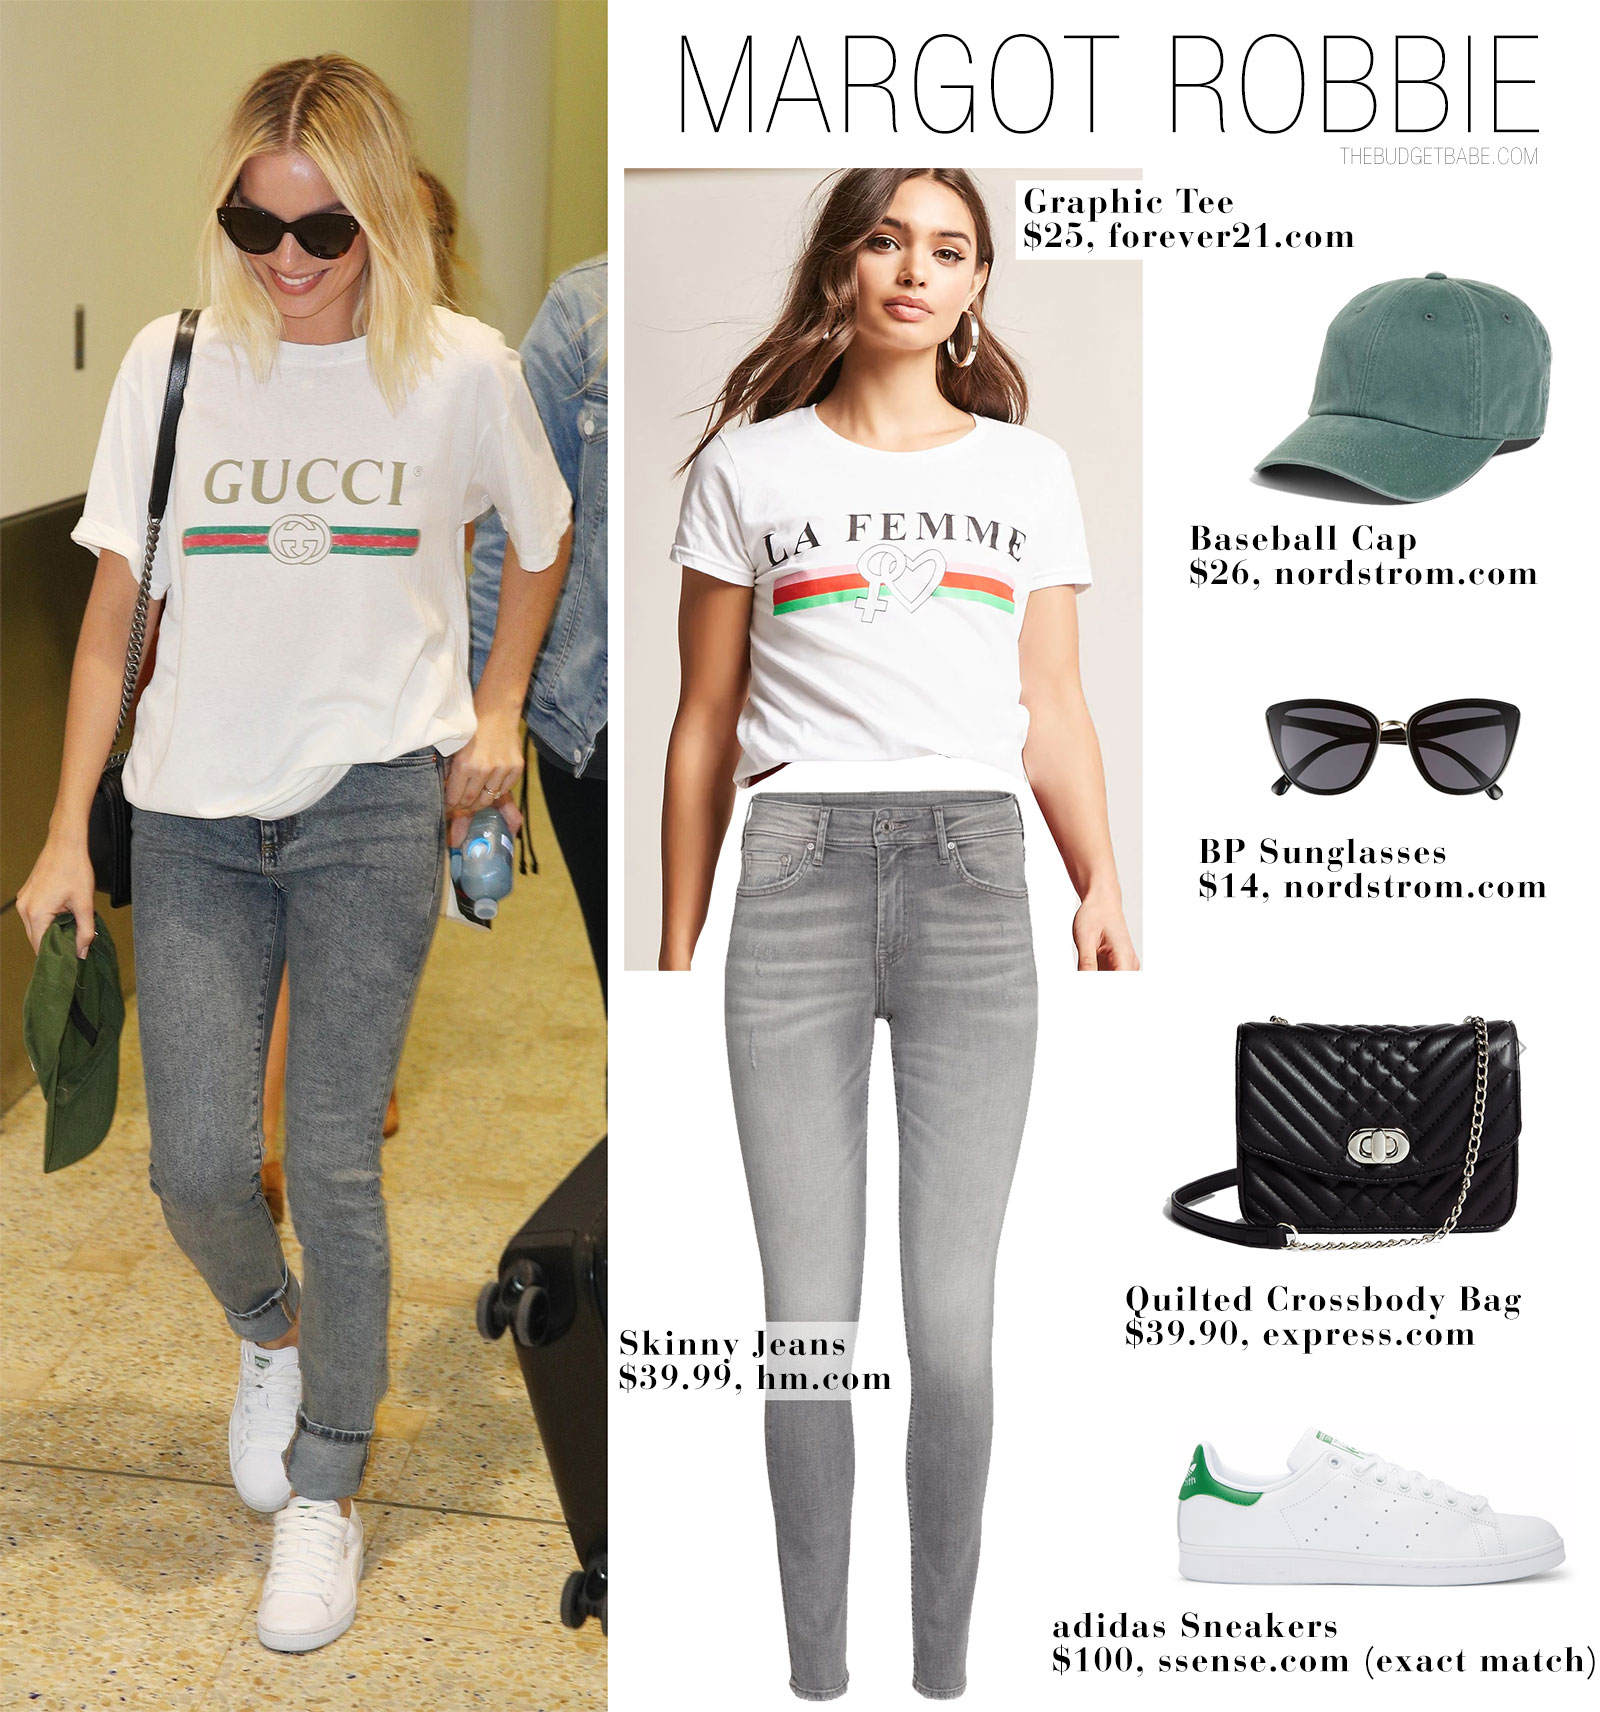 Margot Robbie wears a Gucci logo t-shirt with skinny jeans and Adidas Stan Smith sneakers.